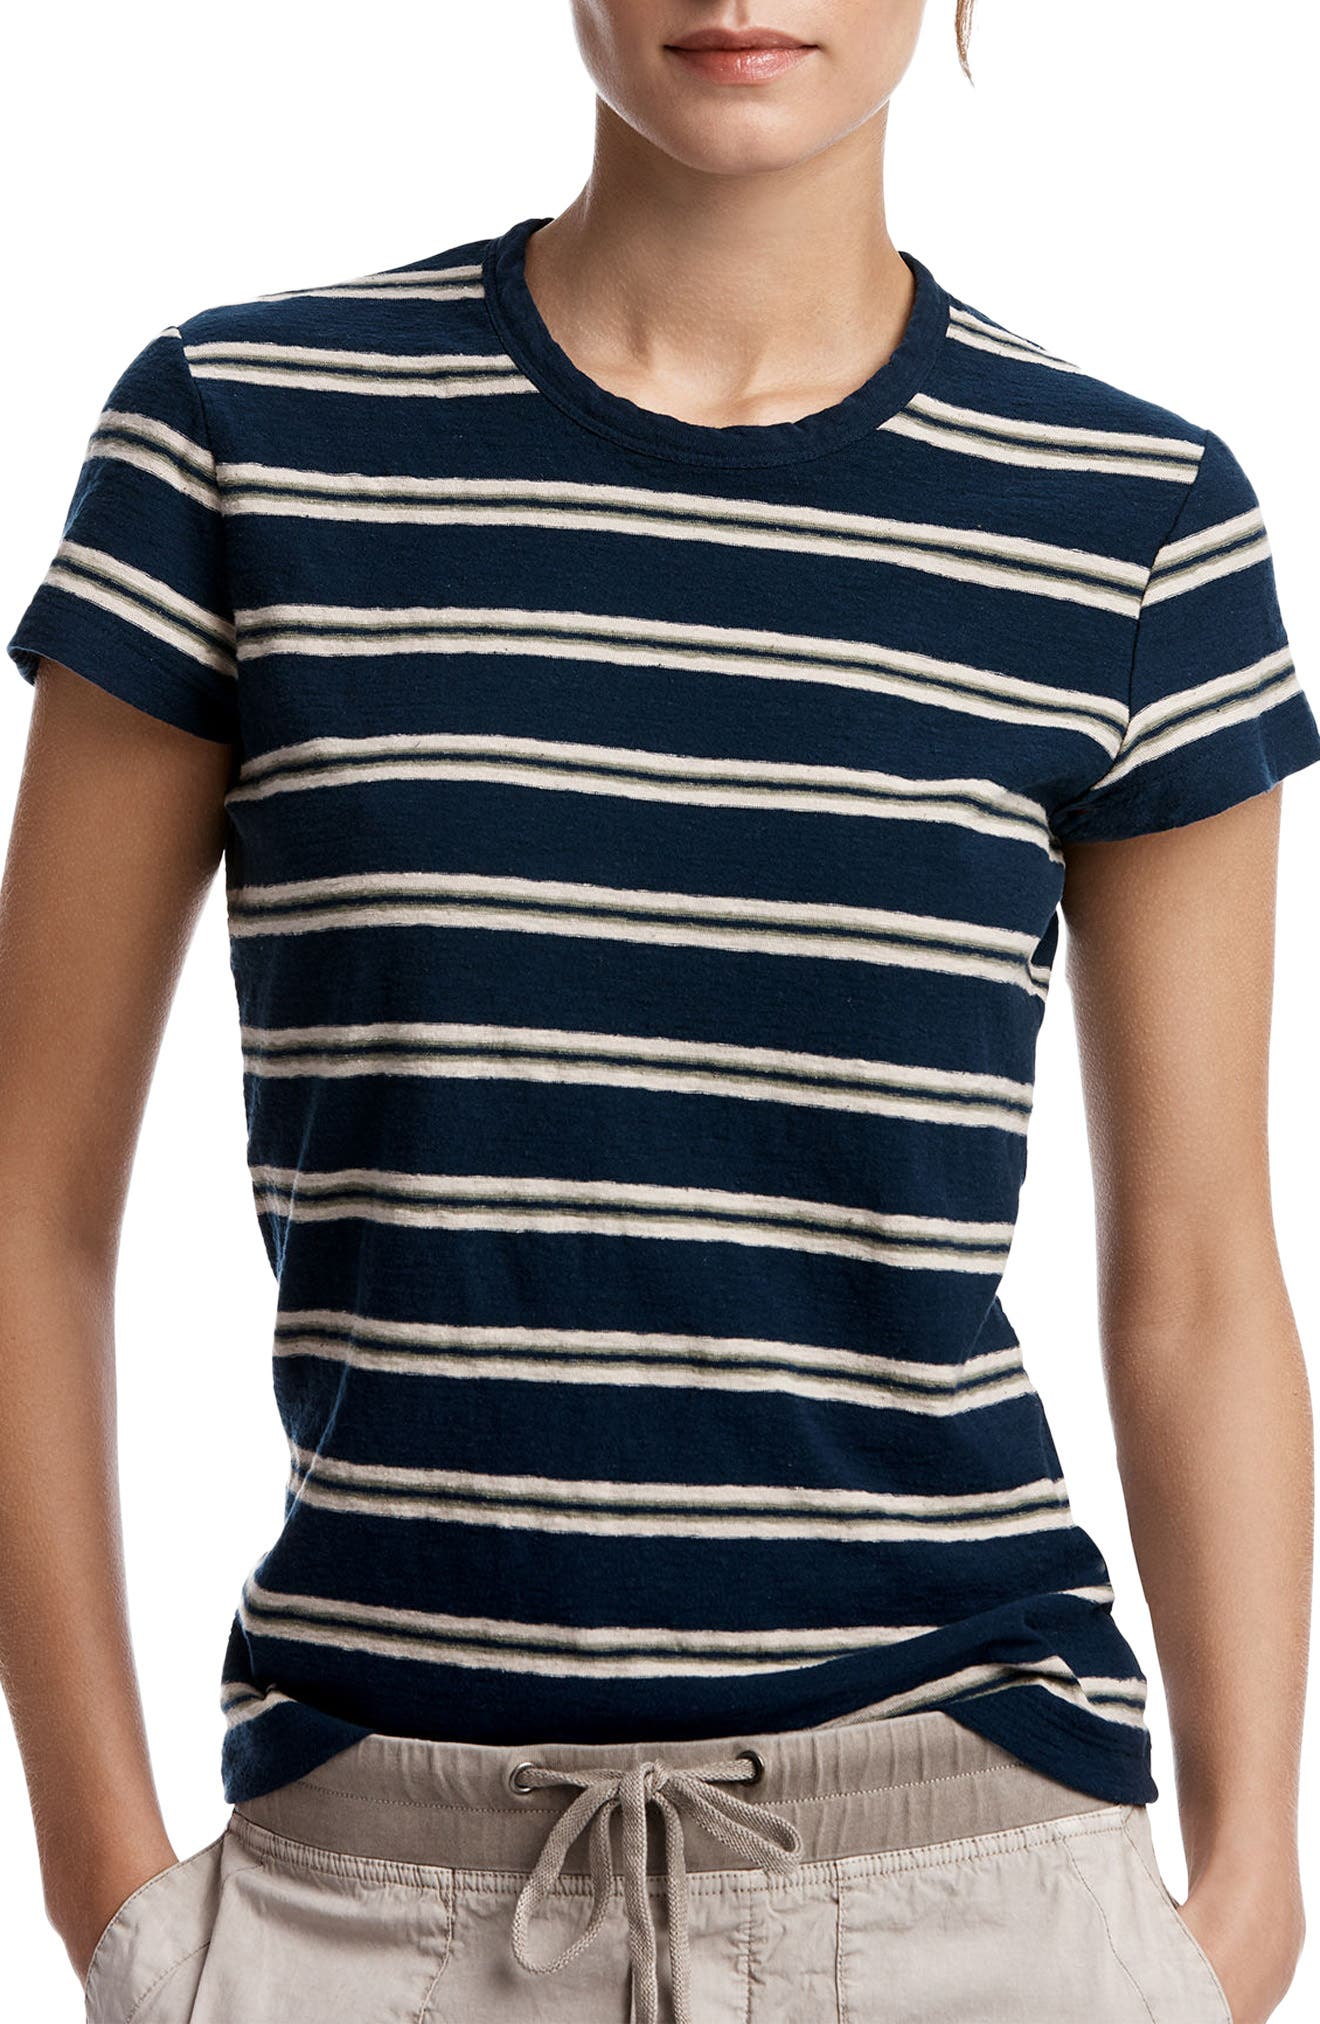 James Perse Retro Stripe Tee